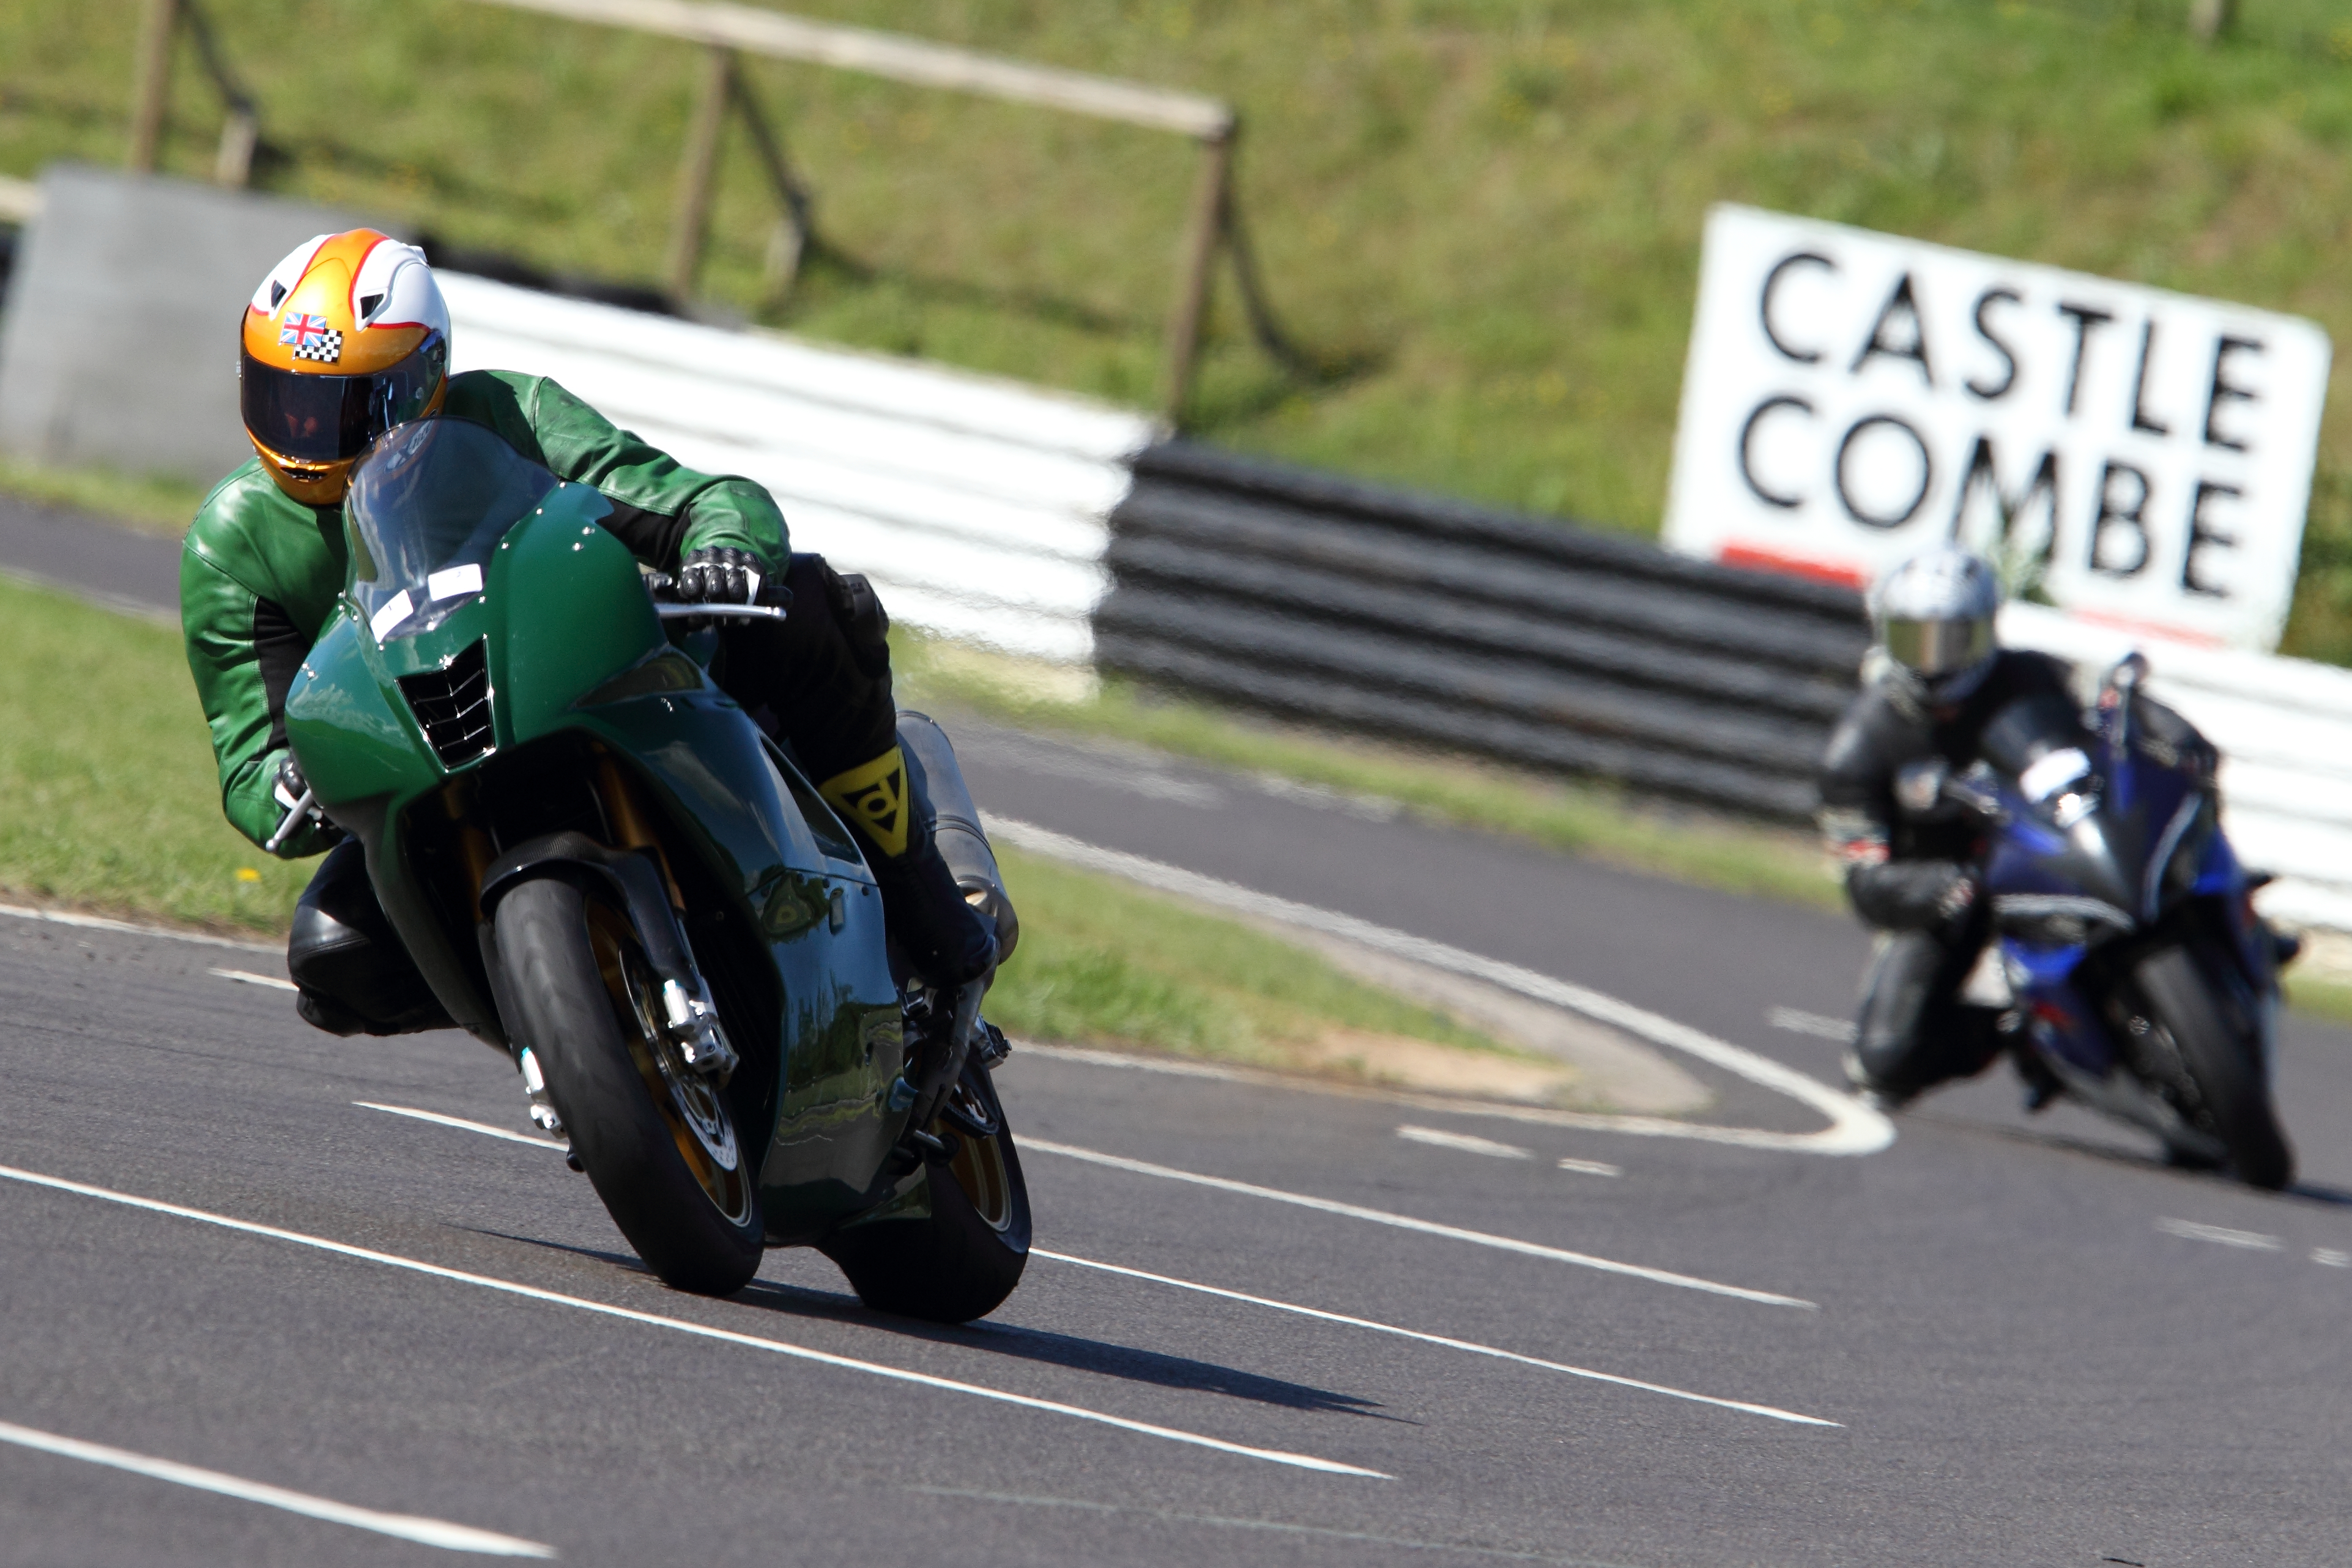 Motorcycle Skills School: Tuesday 10th August 2021